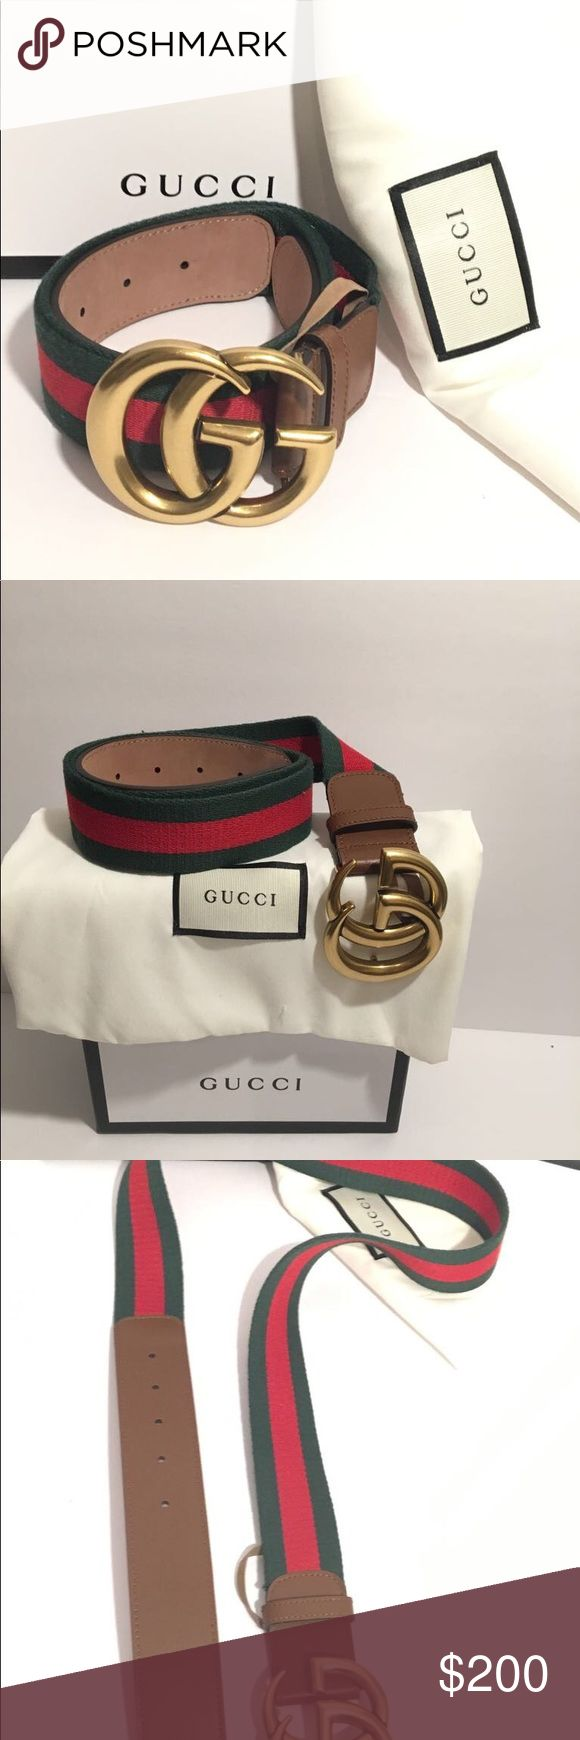 Brand new Gucci belt brown green/red Brand new Gucci belt brown green/red with double gold buckle.                                                 Comes with tags,box and dust bag.                        ( Unisex ) Gucci Accessories Belts